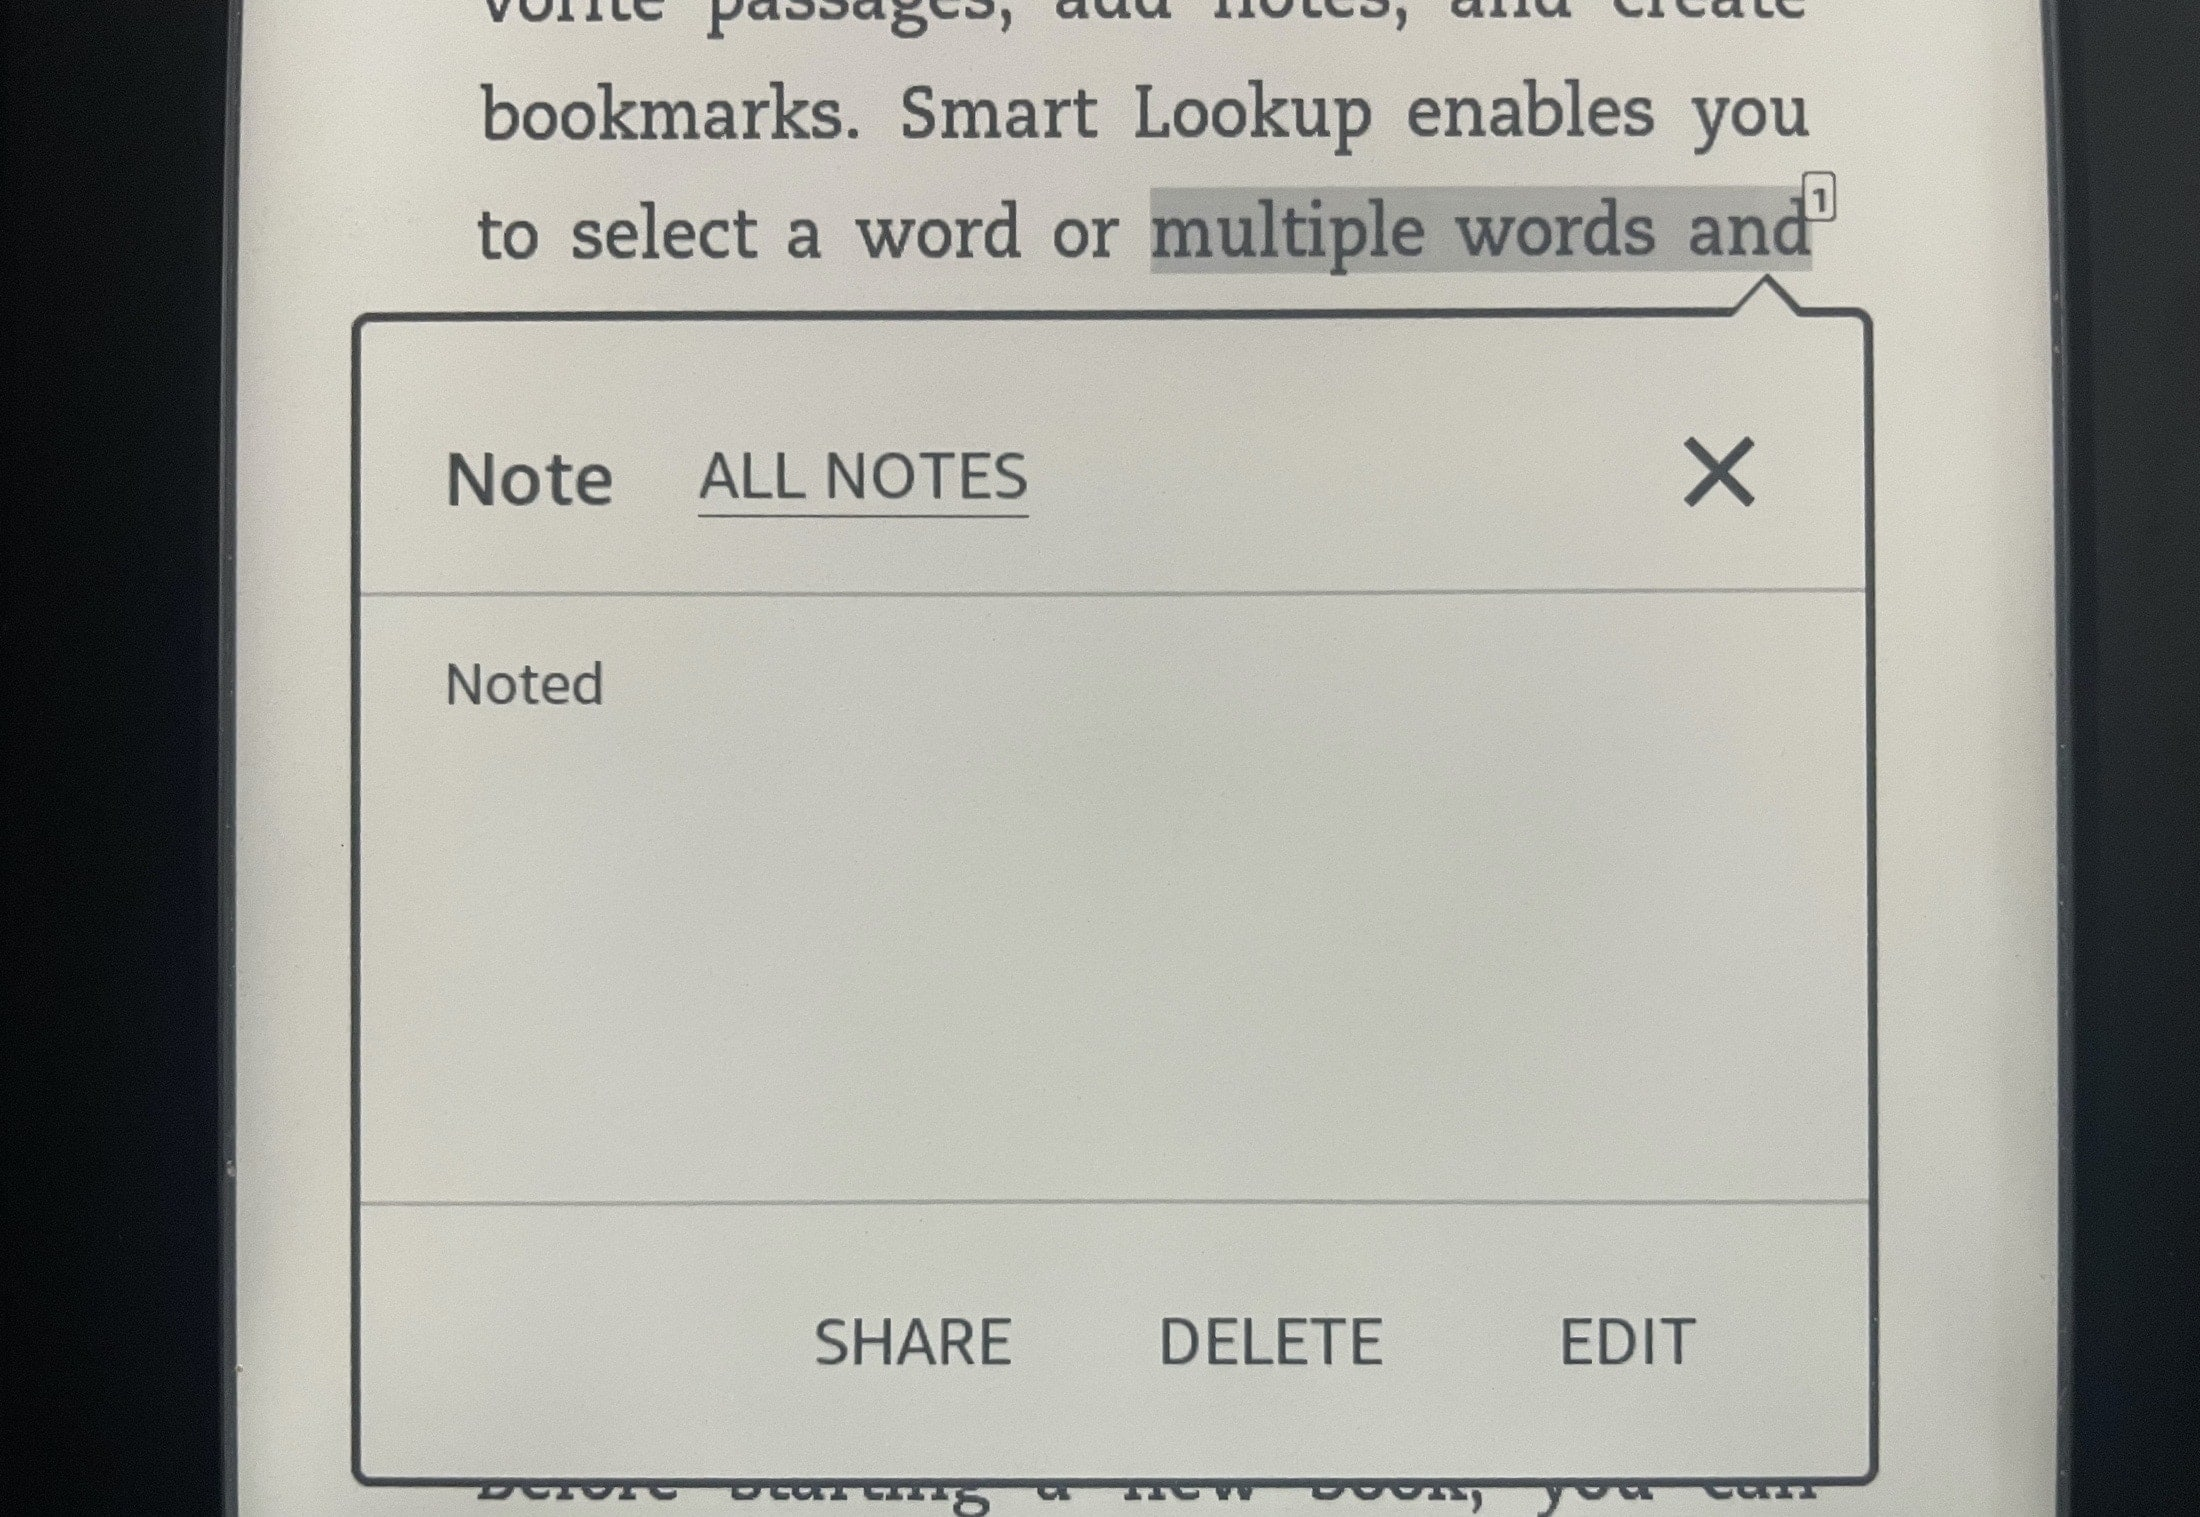 View Note on Kindle Paperwhite